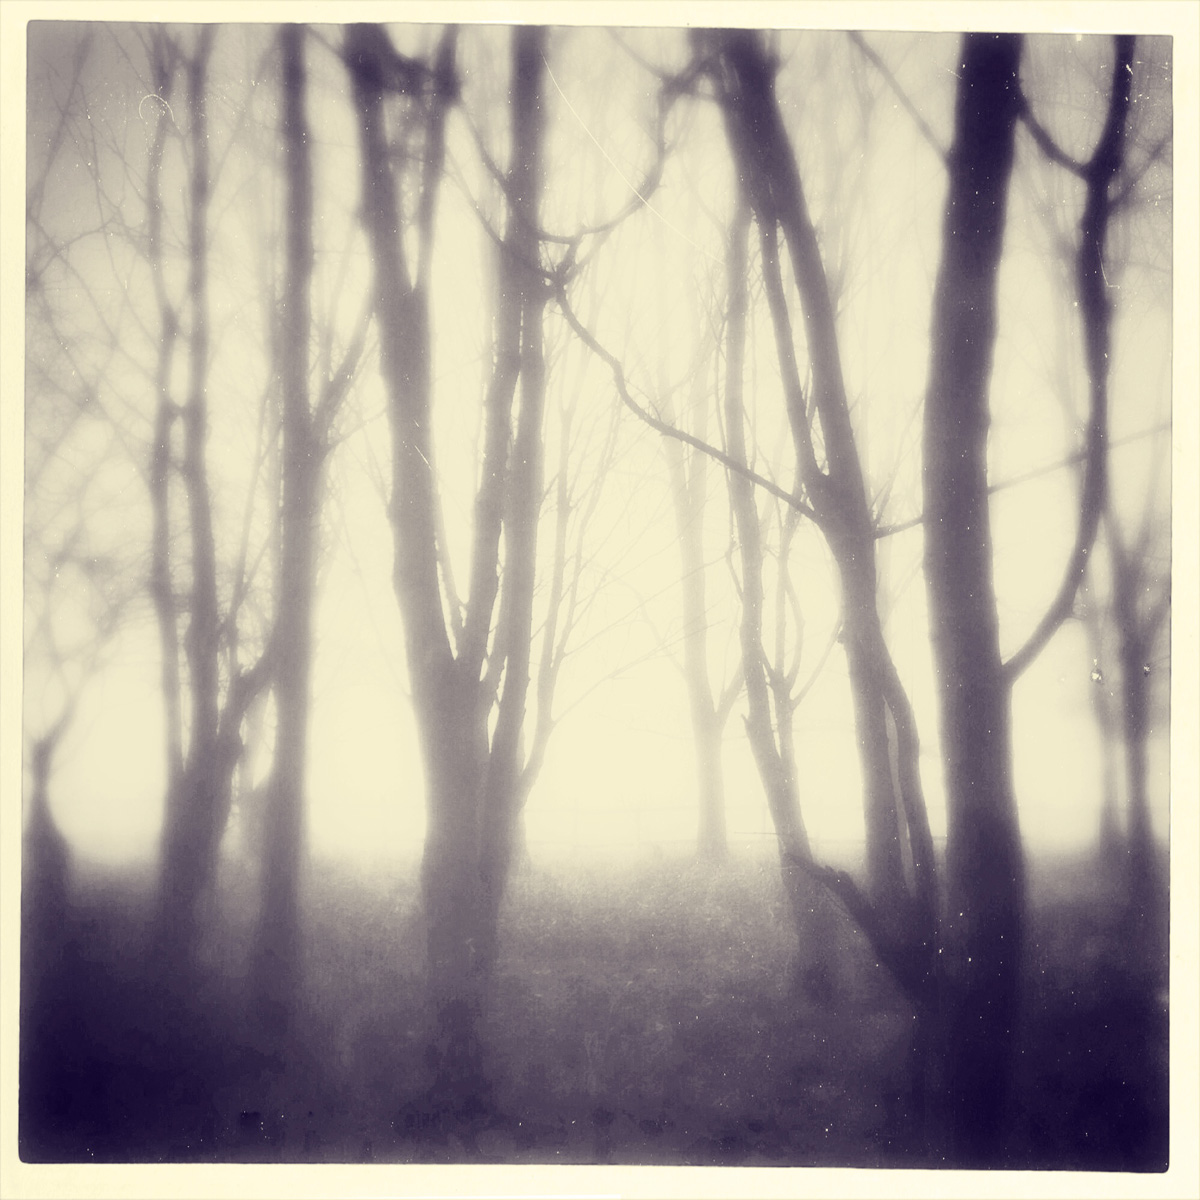 iphoneography - foggy trees 4